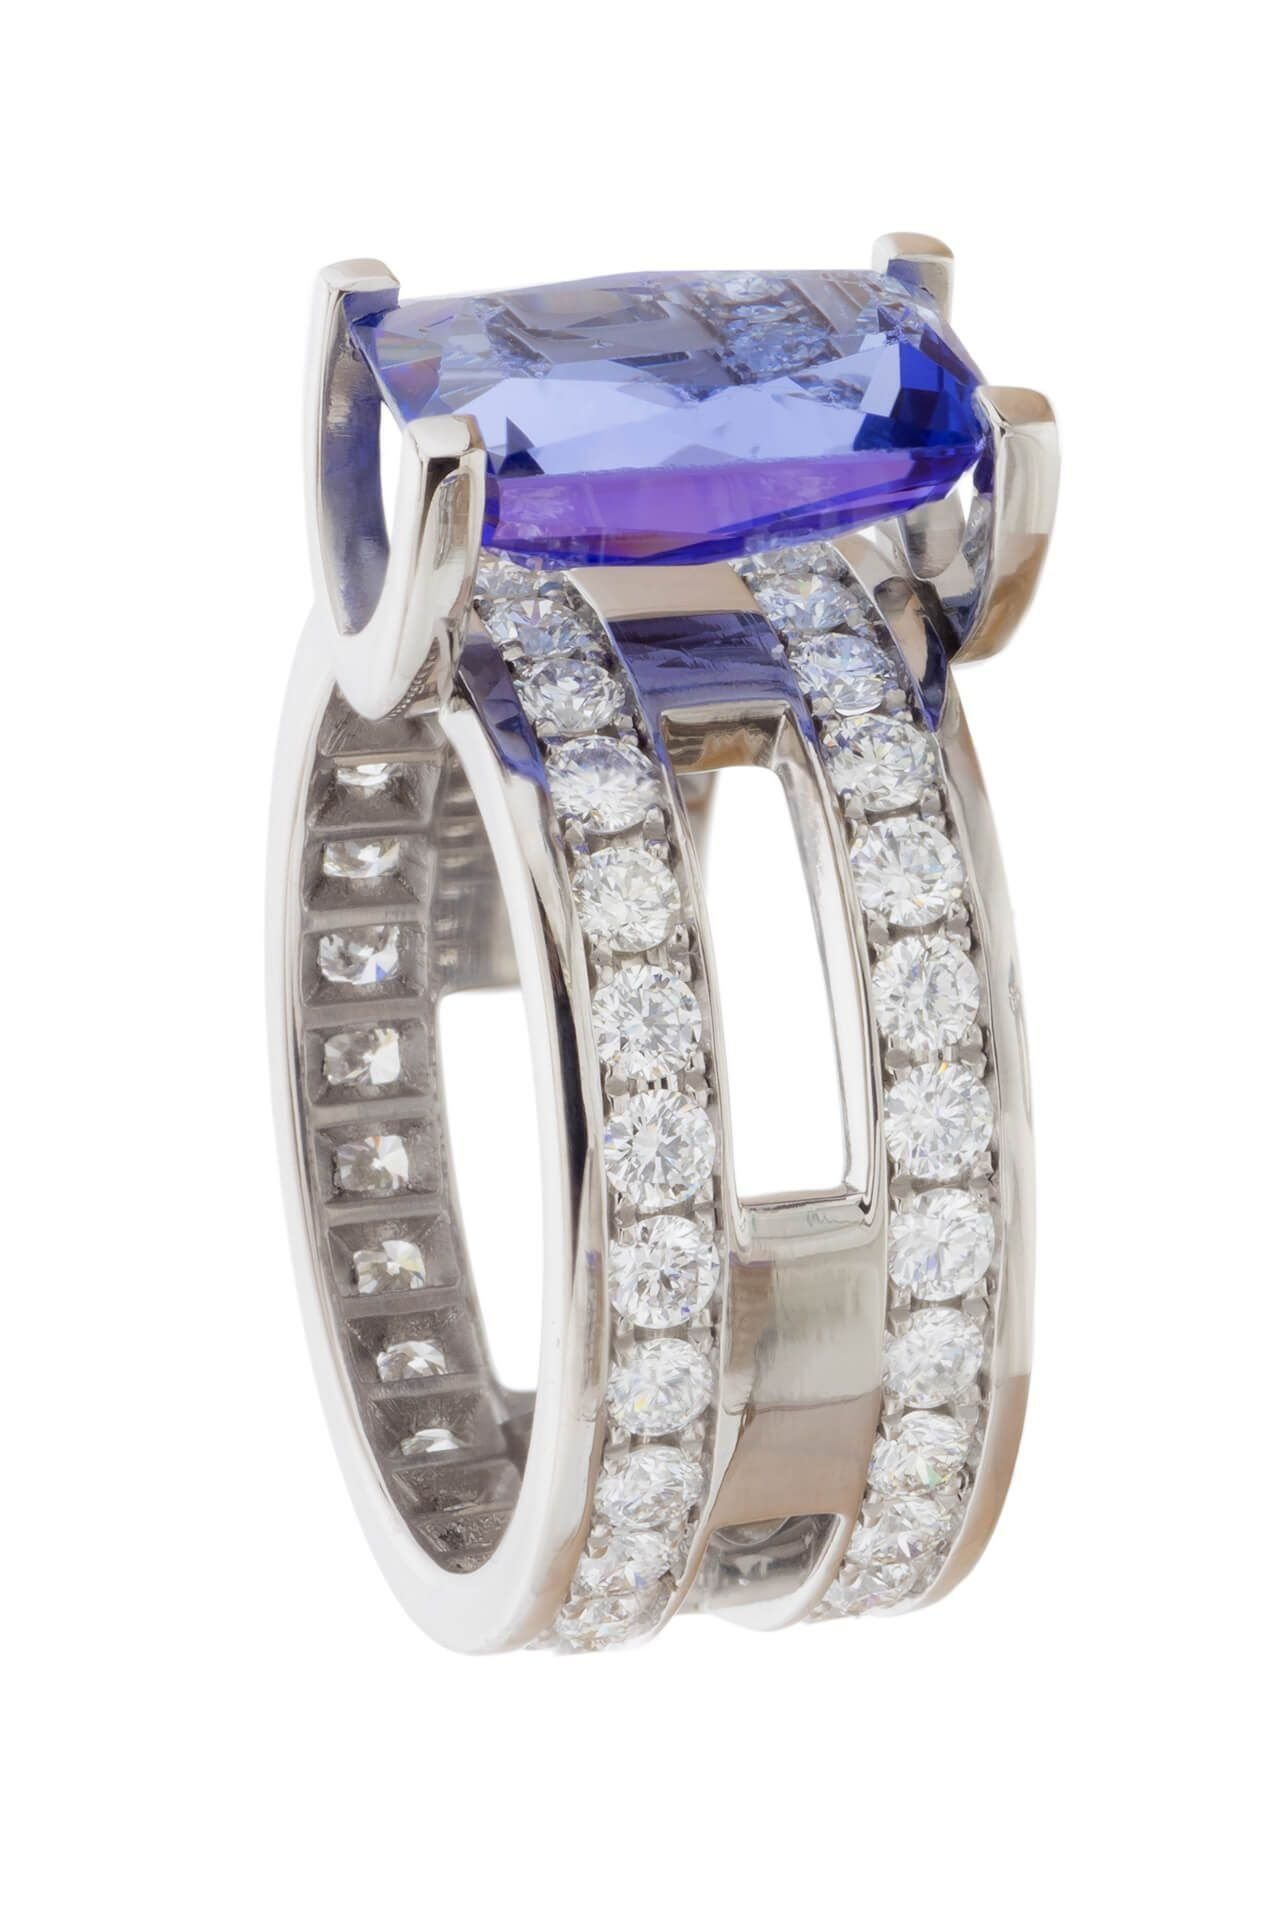 The magnificent trichroism of the tanzanite